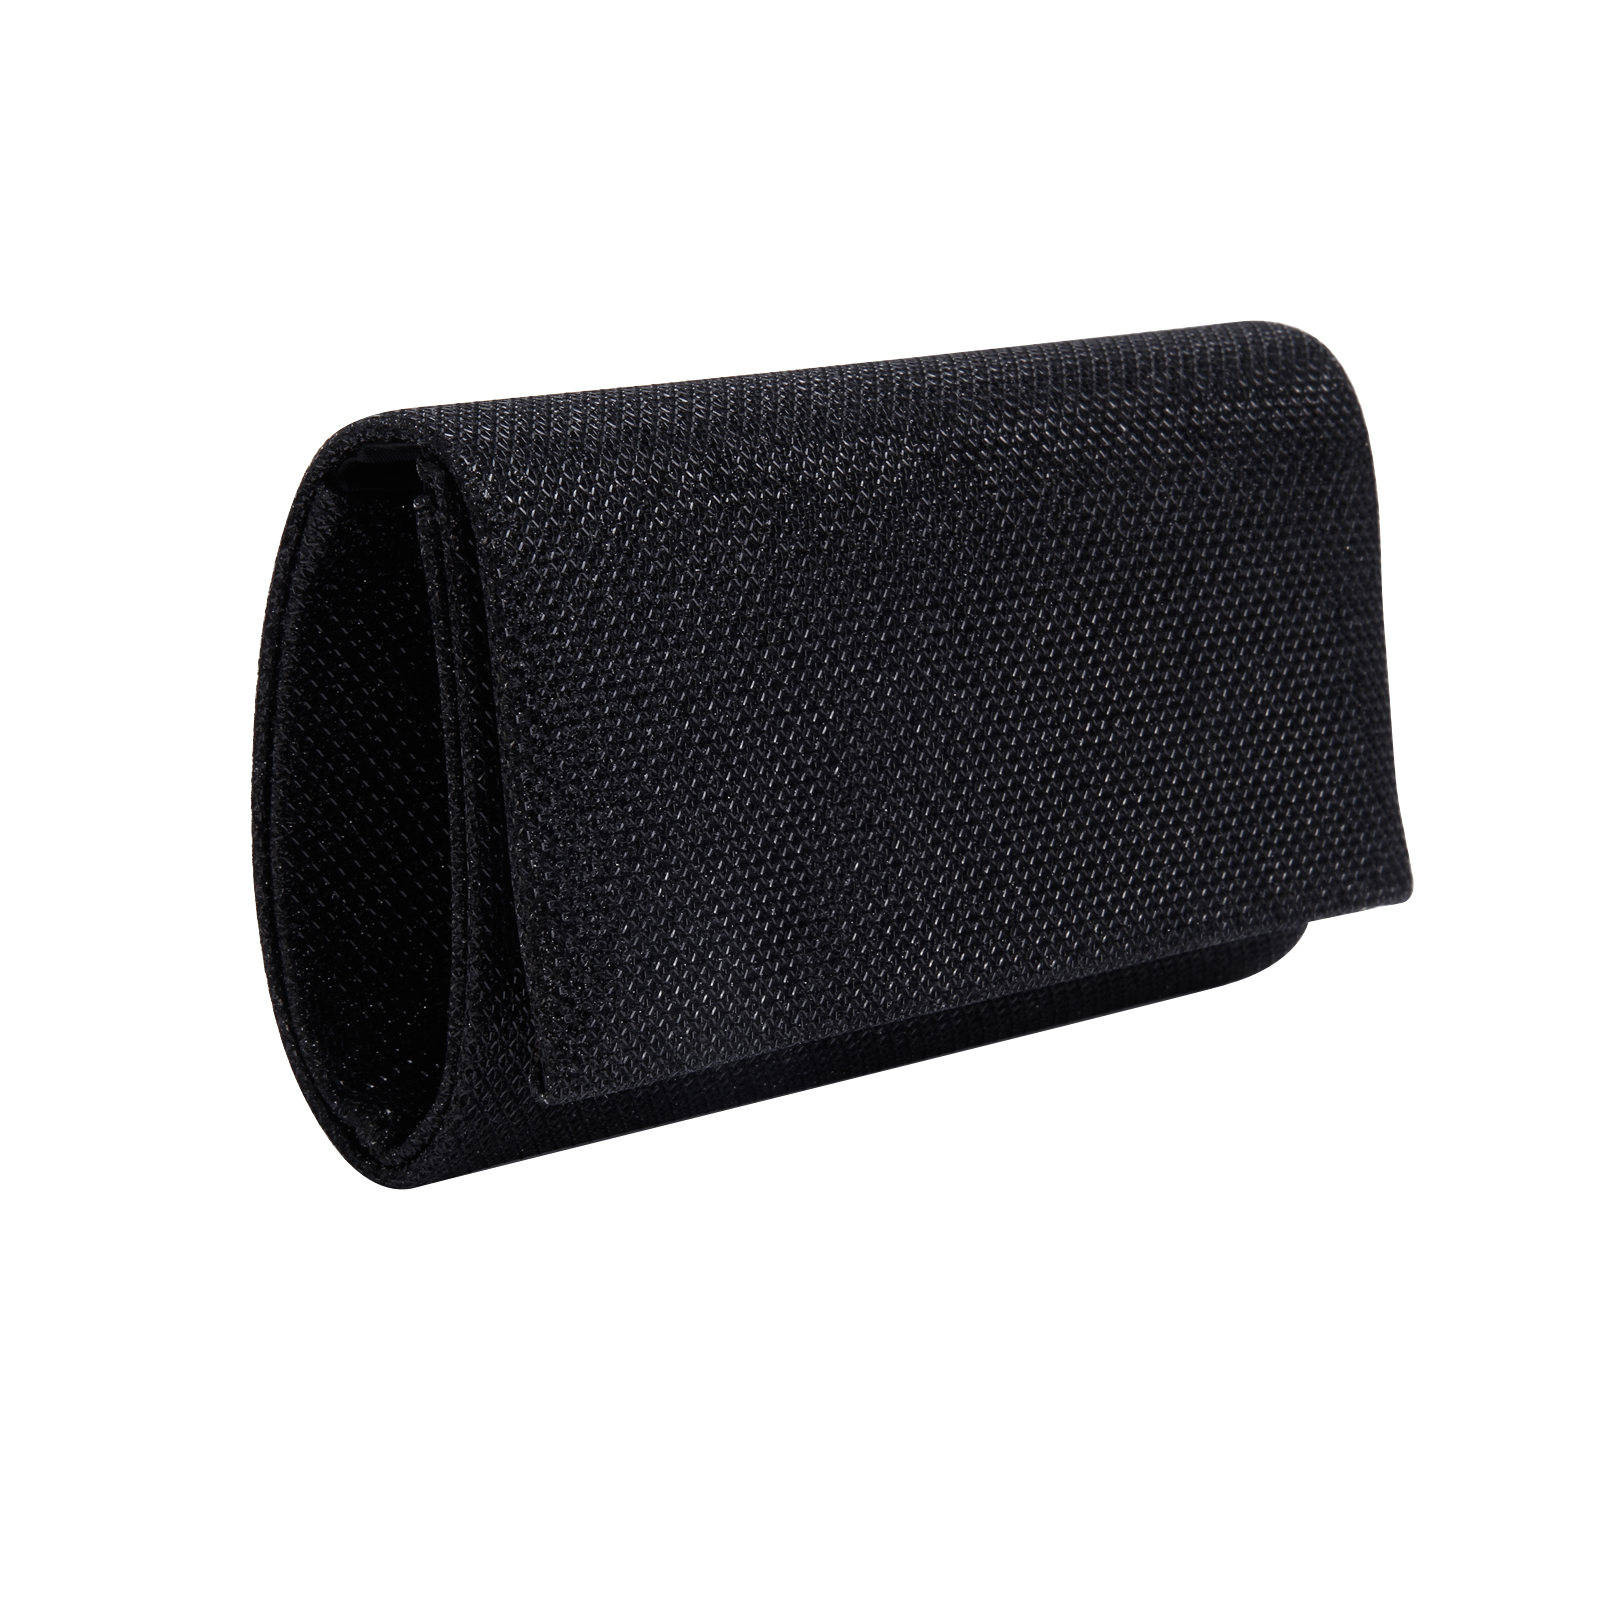 Find great deals on eBay for small black clutch purse. Shop with confidence.